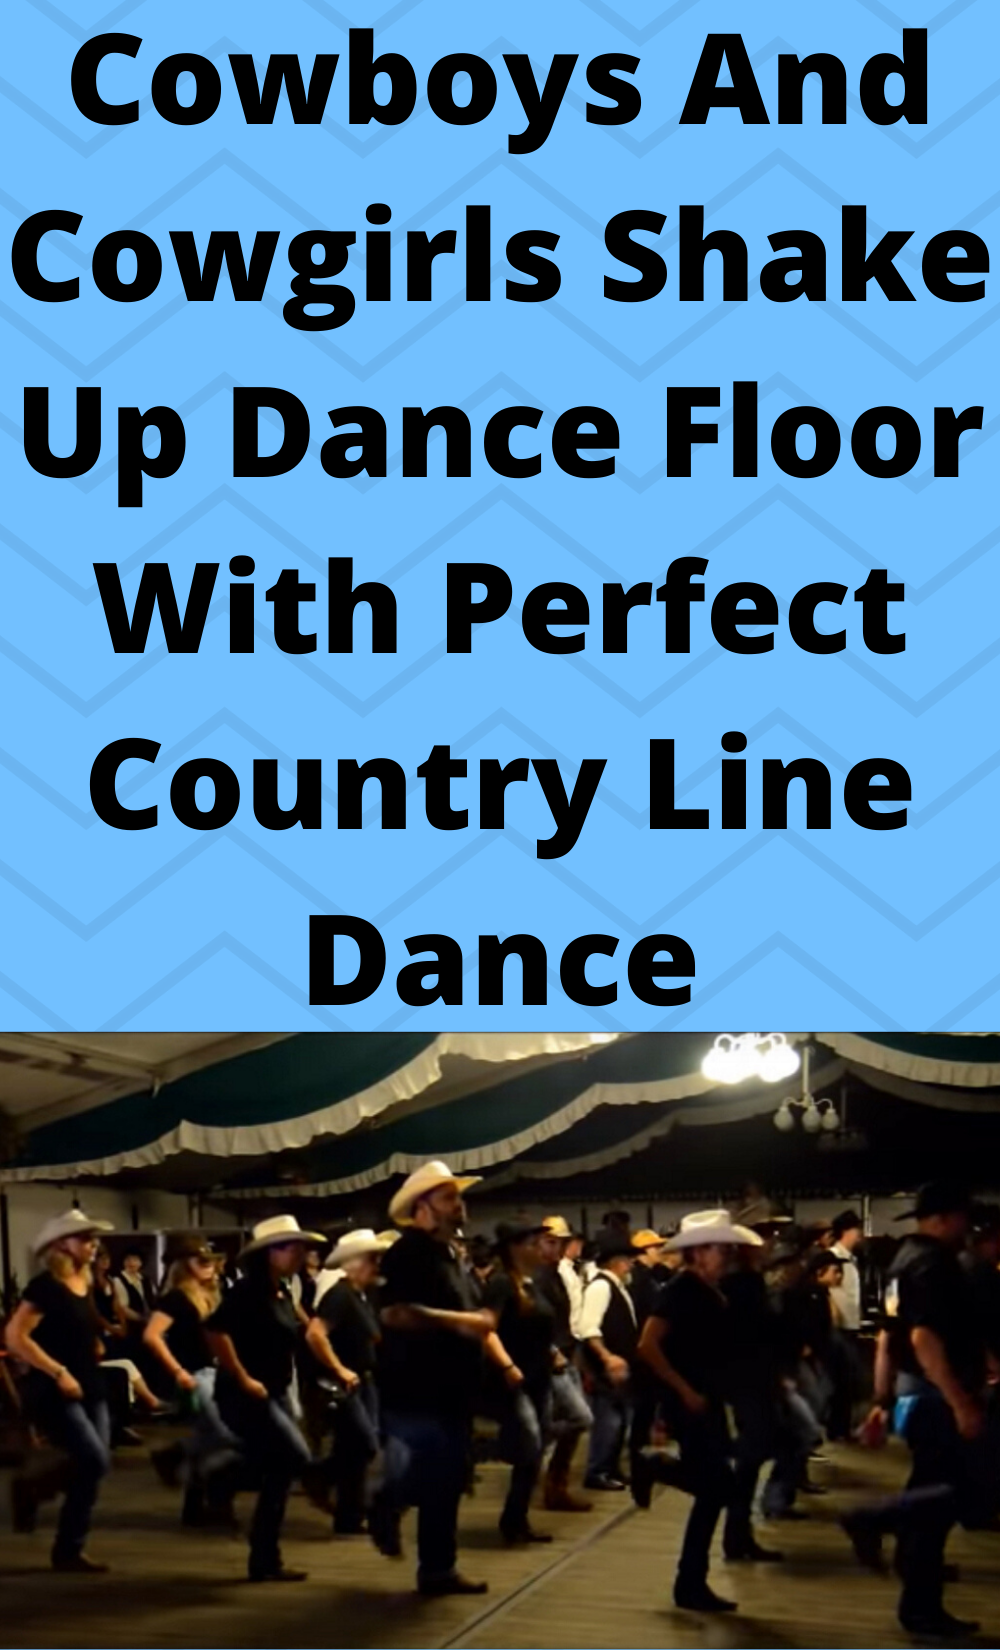 Cowboys And Cowgirls Shake Up Dance Floor With Perfect Country Line Dance